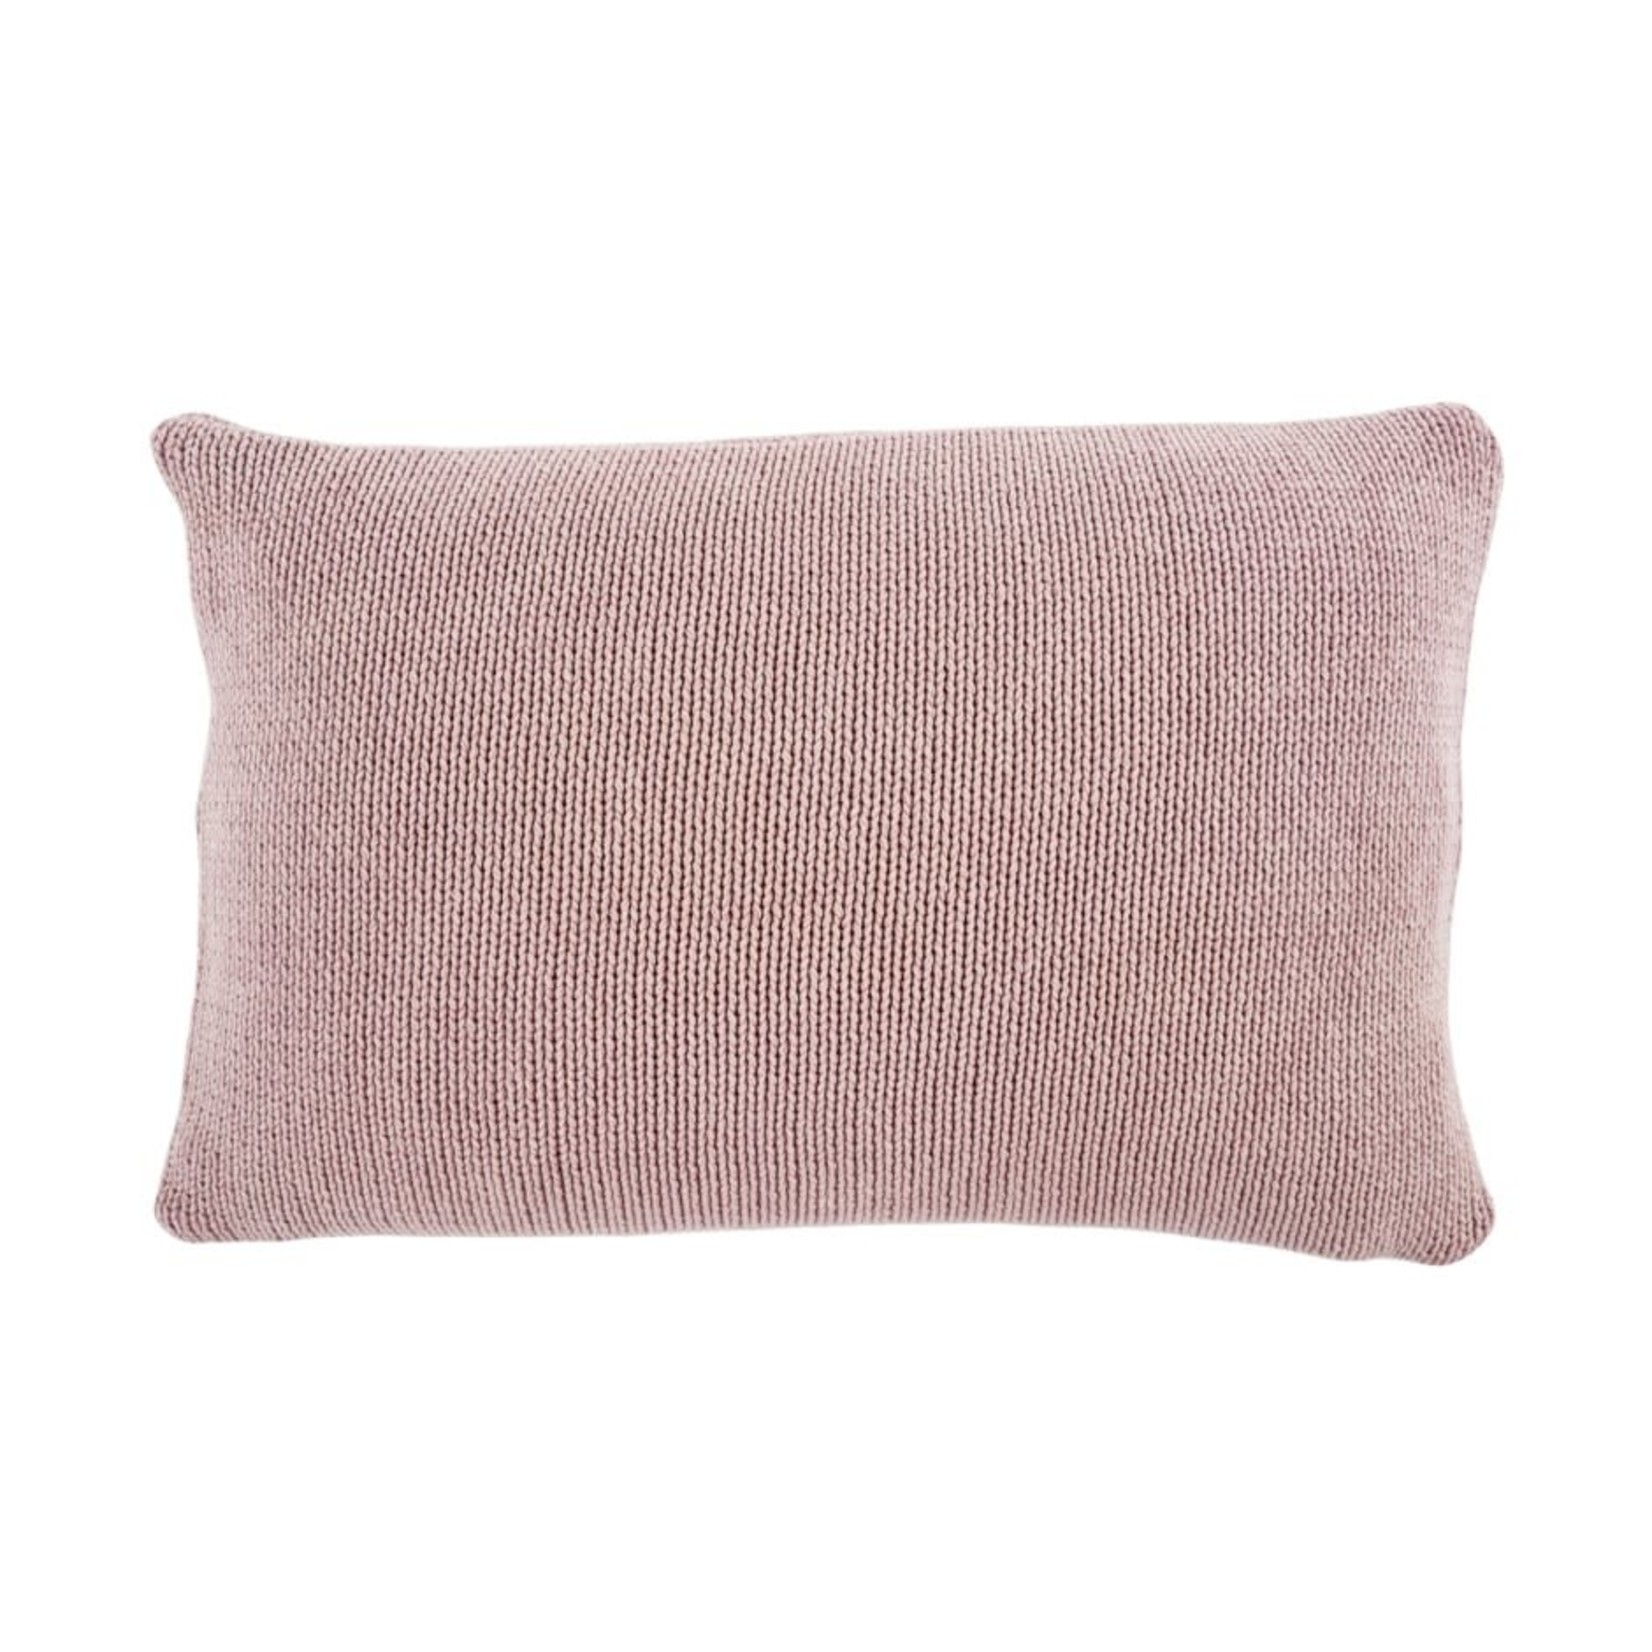 Cotton Knit Pillow, Lilac